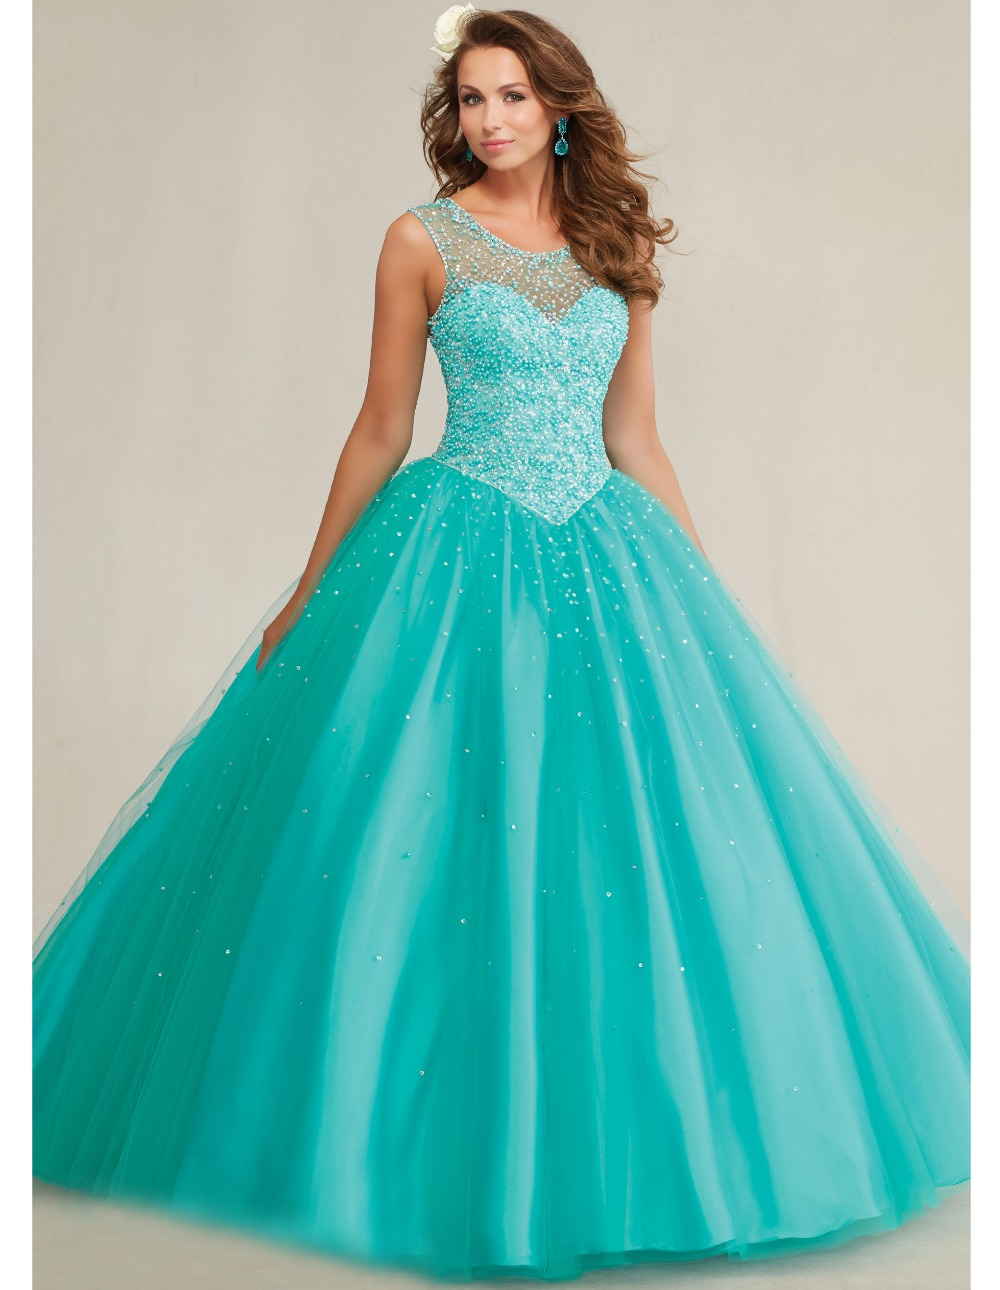 quinceanera 15 years vestidos de 15 anos 2015 blue sweet 16 dresses ...